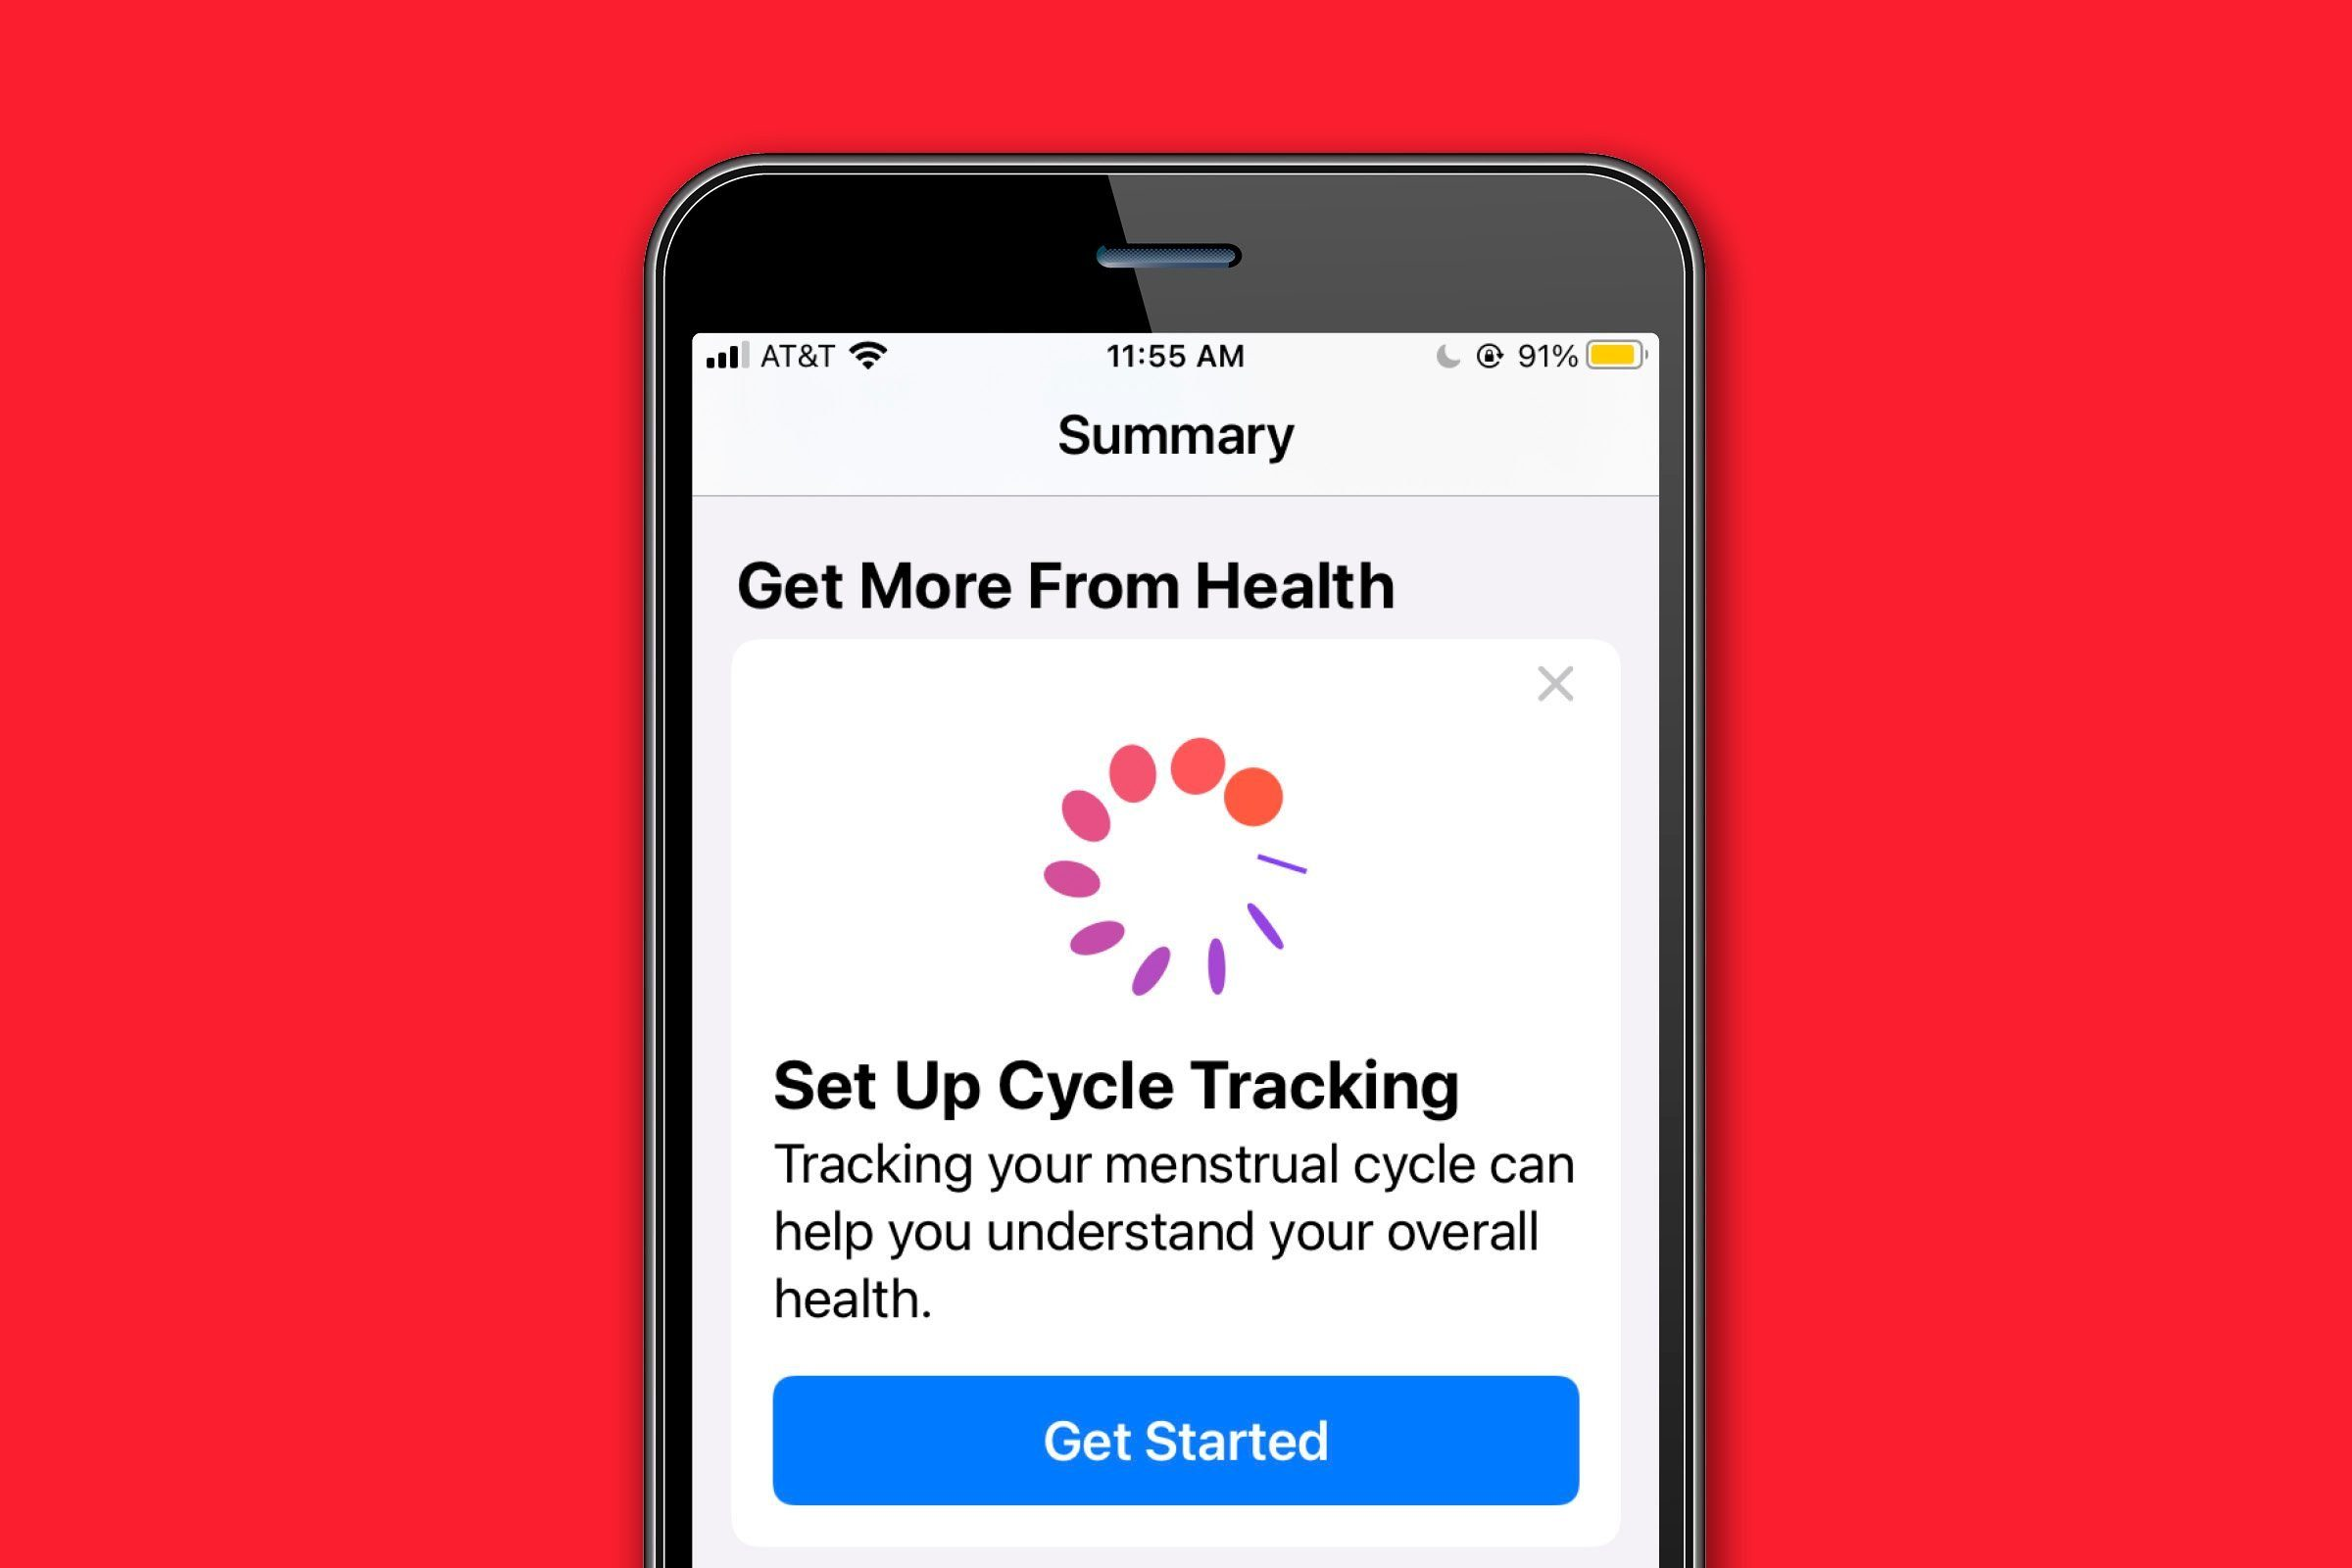 Track your menstrual cycle and other health data